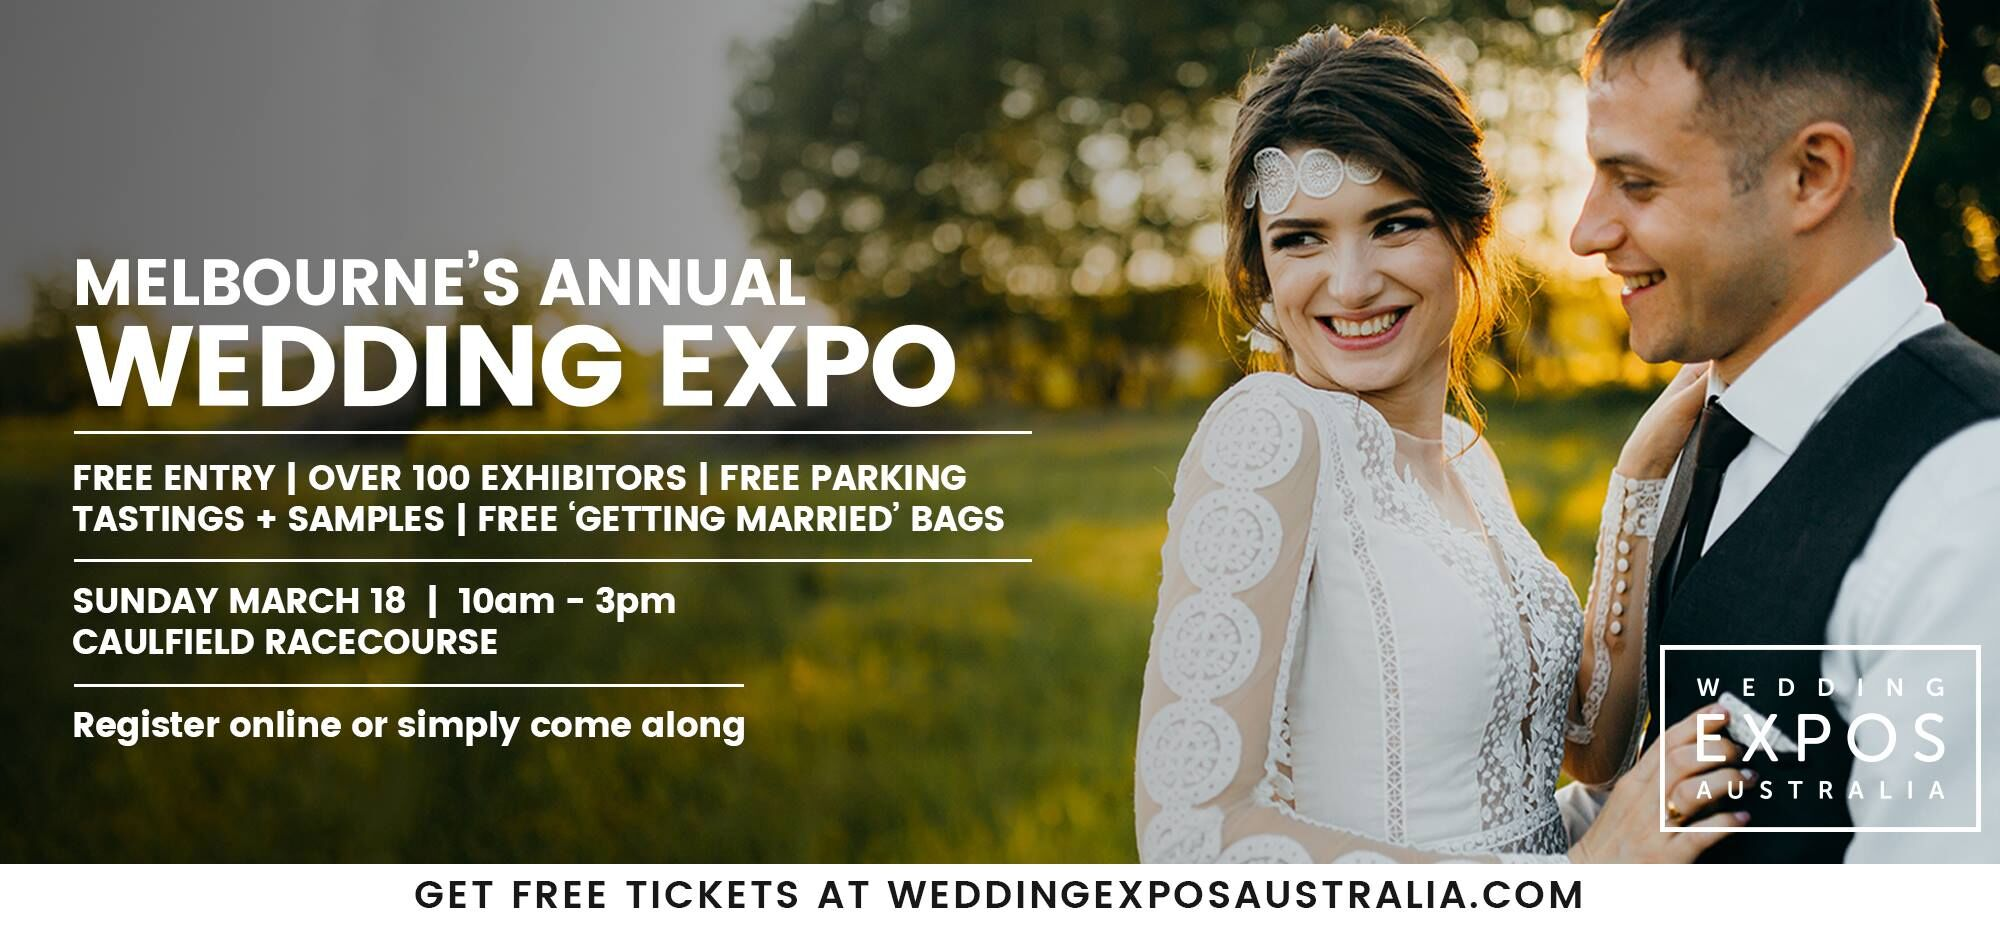 Melbourne's Annual Wedding Expo